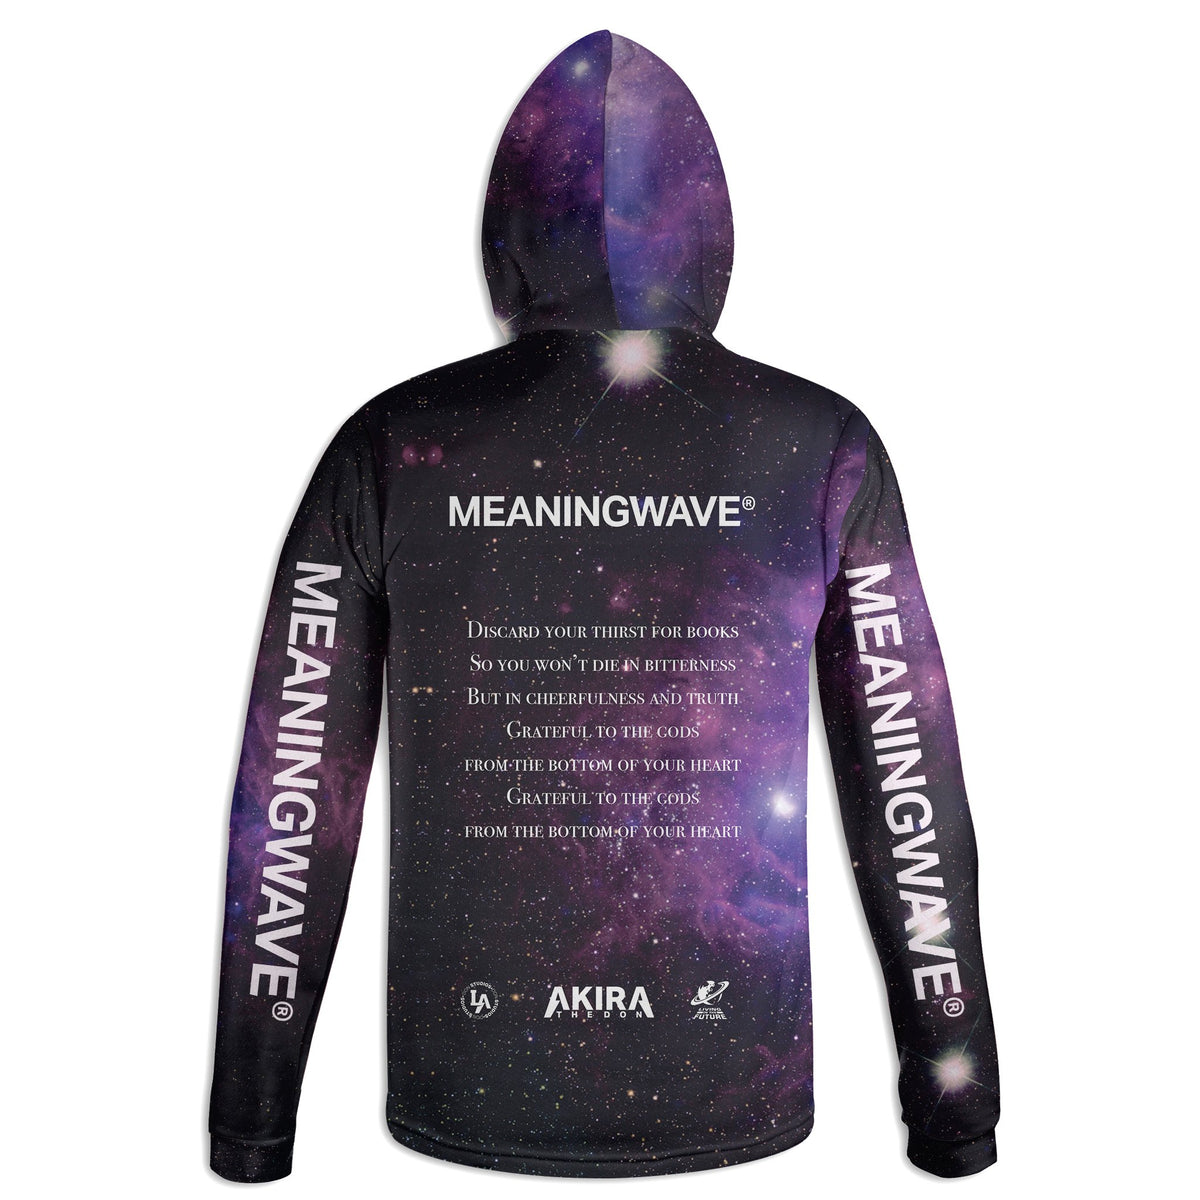 AKIRA THE DON & MARCUS AURELIUS - GRATEFUL TO THE GODS Hoodie | meaningwave.com